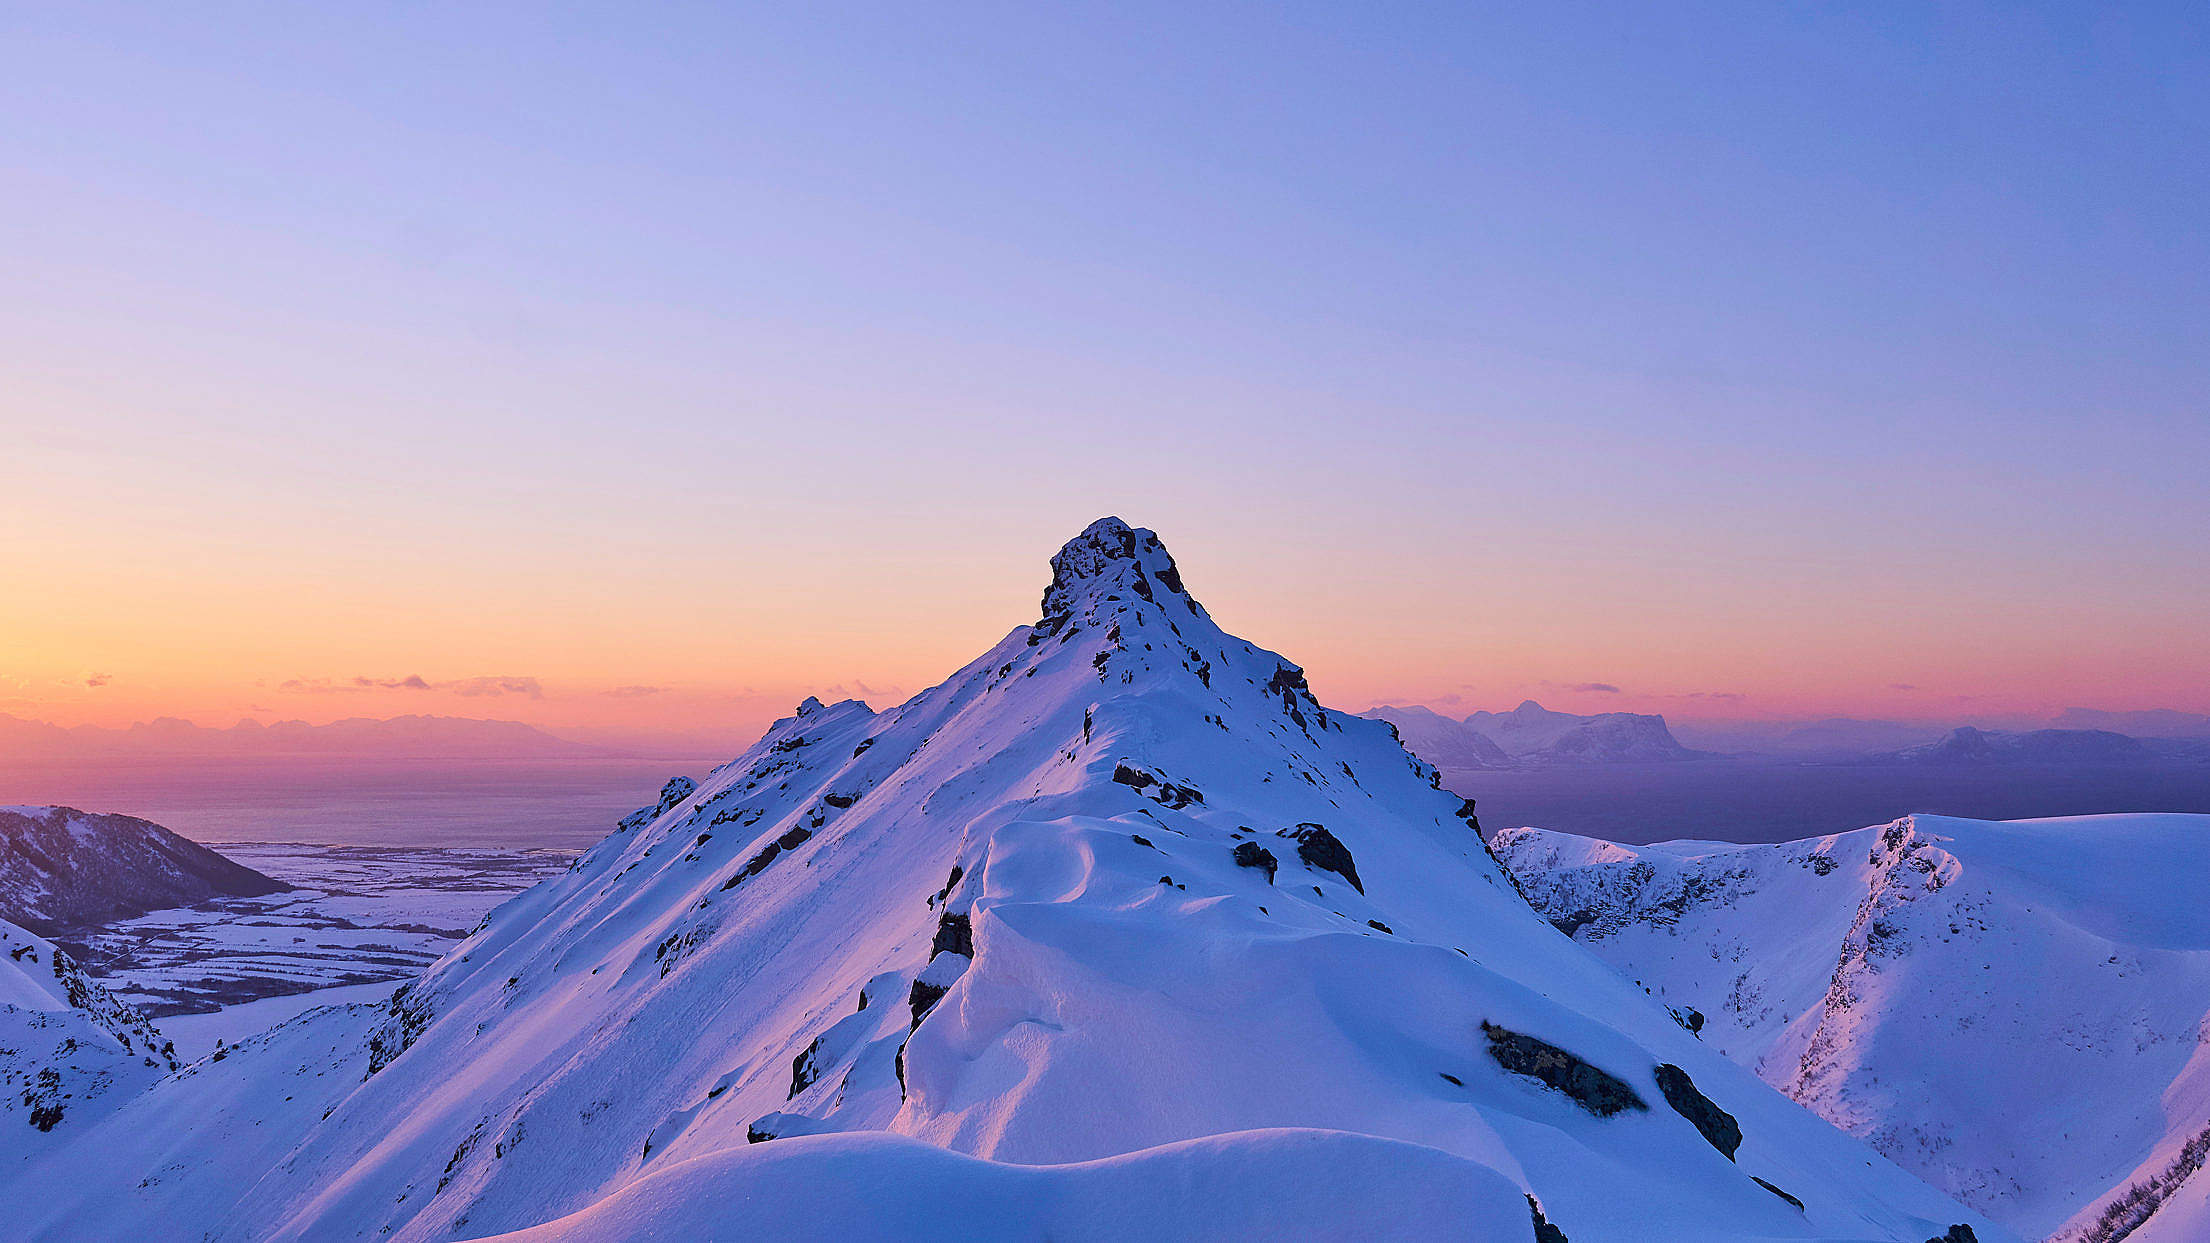 Download Snowy Mountain Peak with Sunrise Glow Free Stock Photo